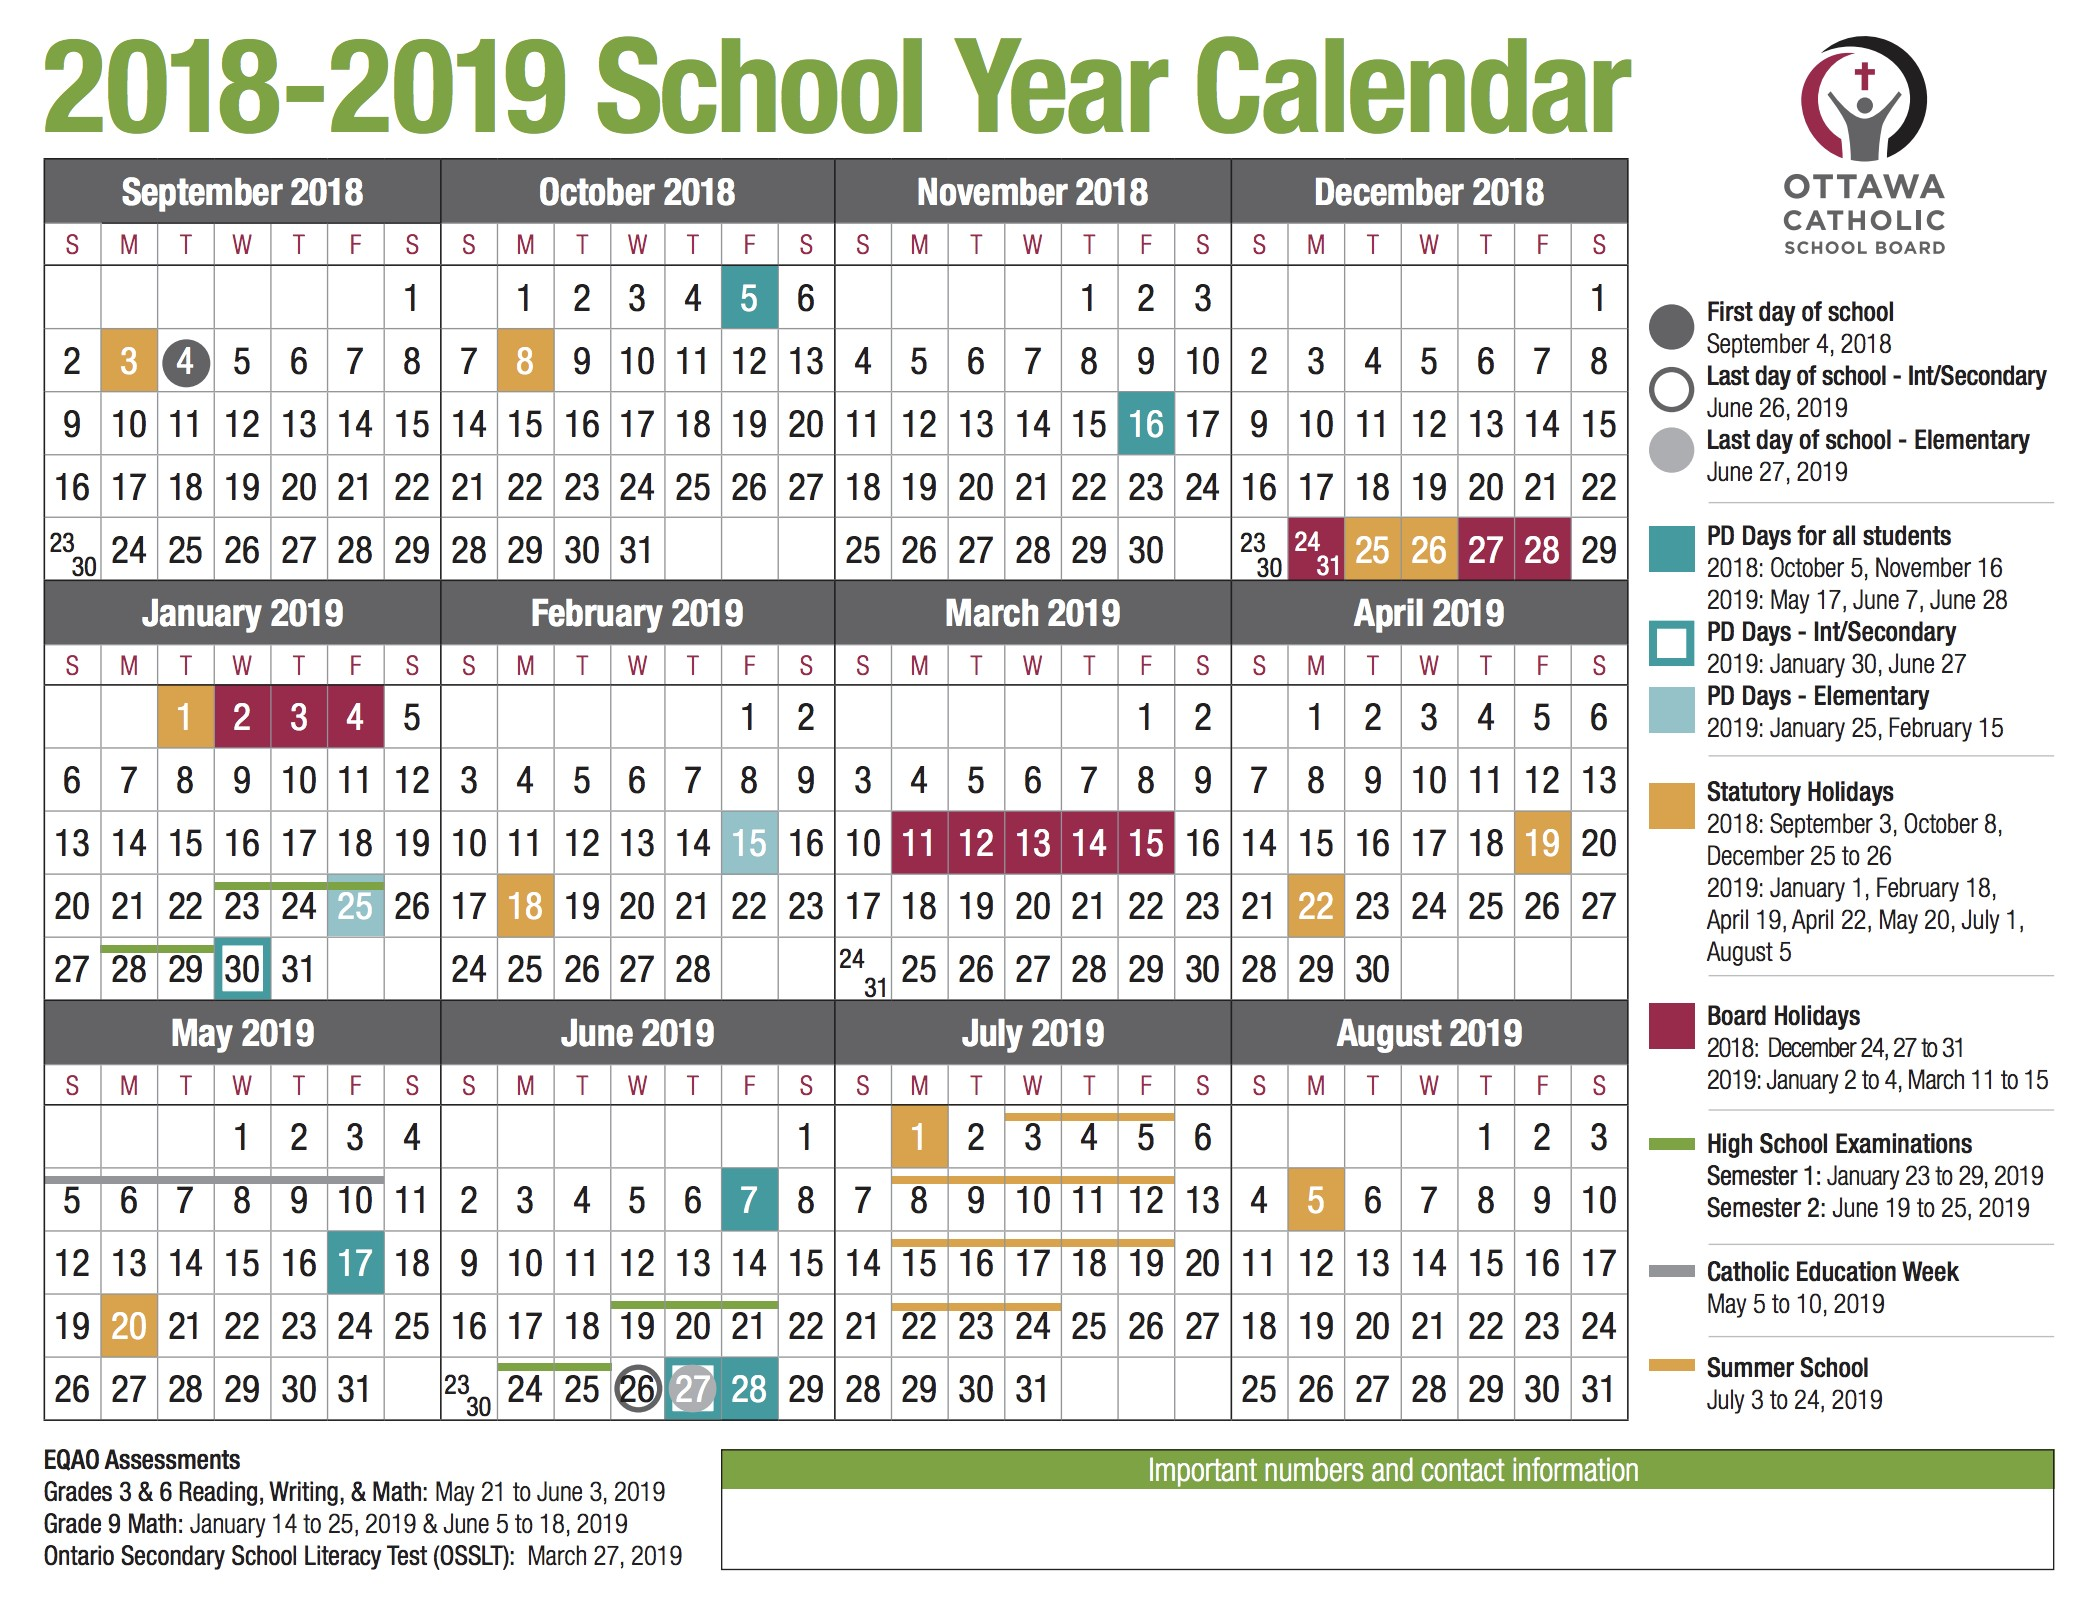 2018 Printable Vacation Calendar Template 2014 School Year Calendar From the Ocsb